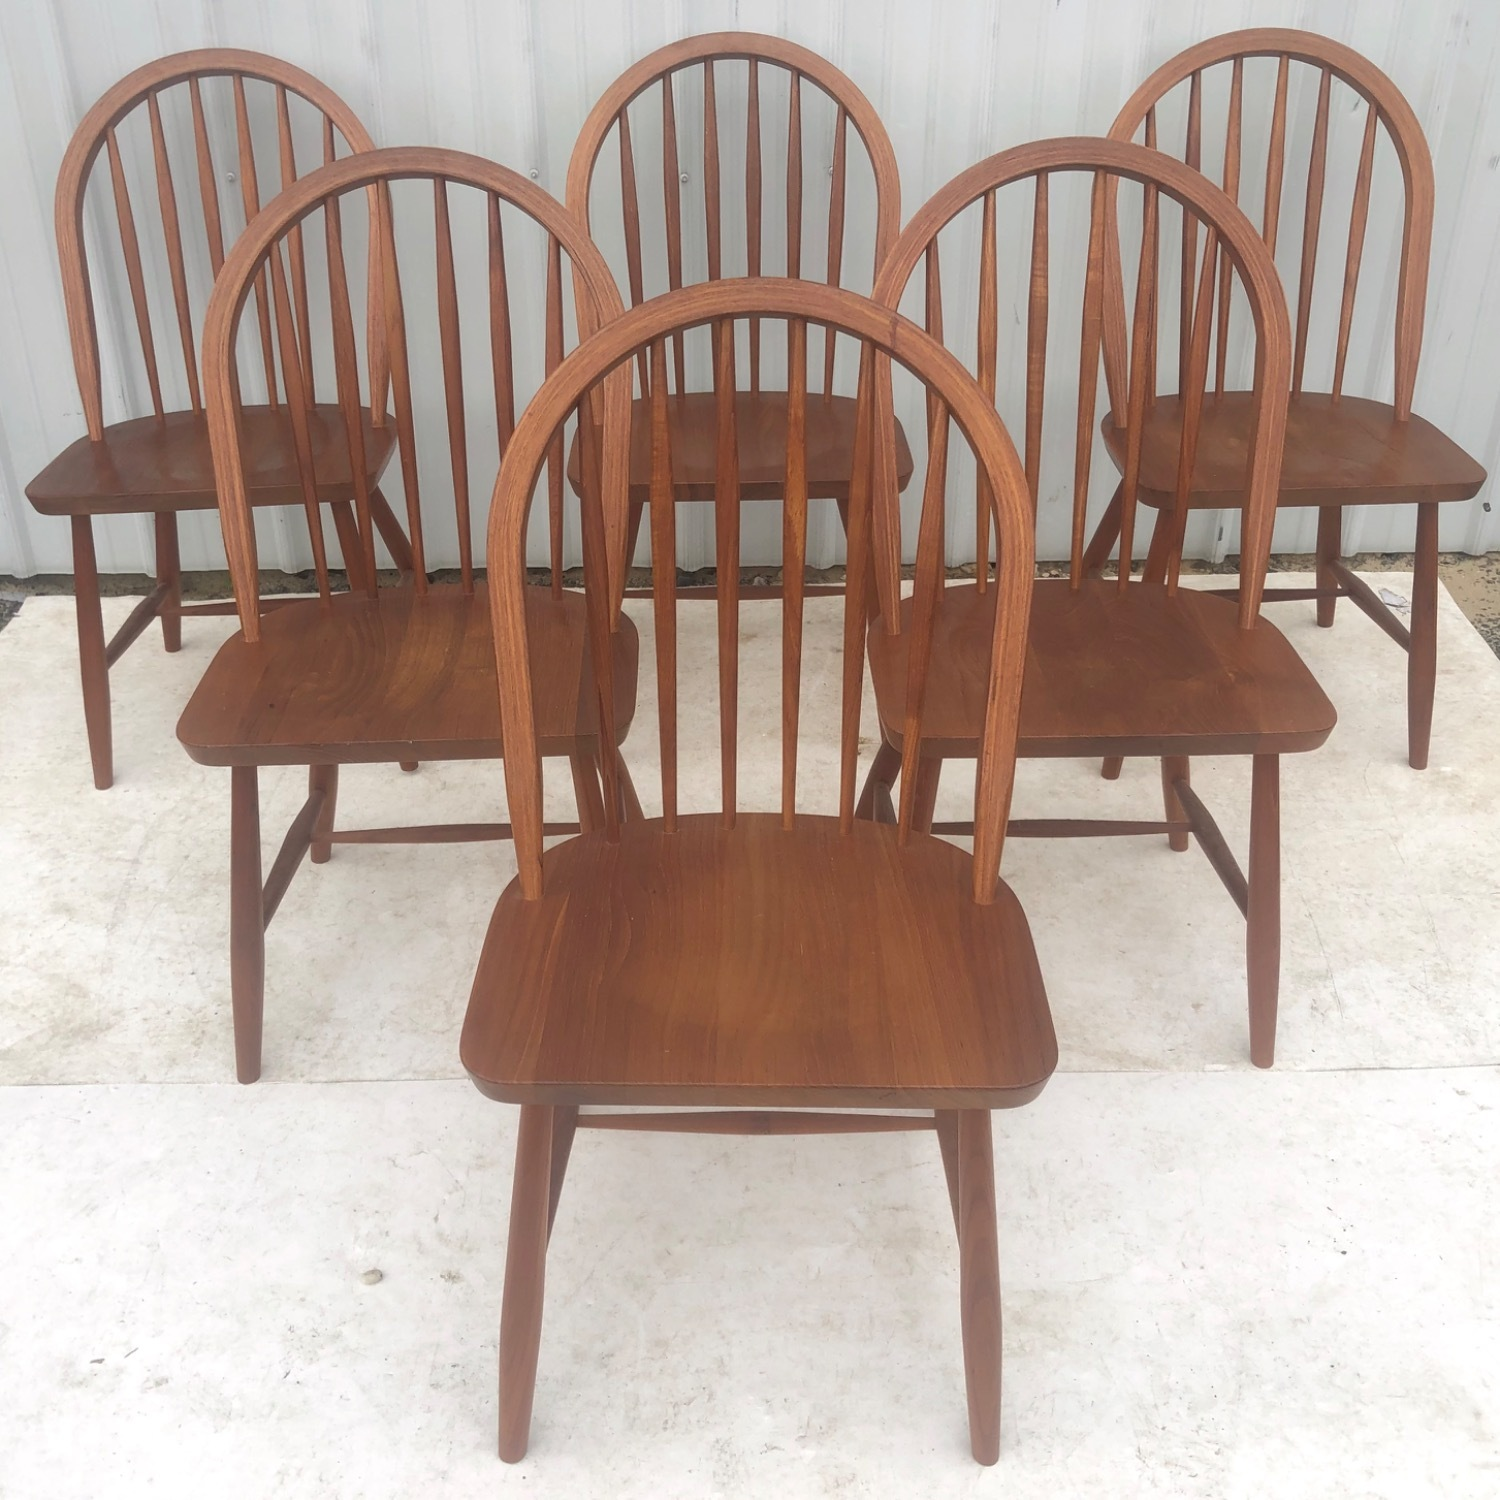 Vintage Modern Dining Set w/ Six Chairs - image-13